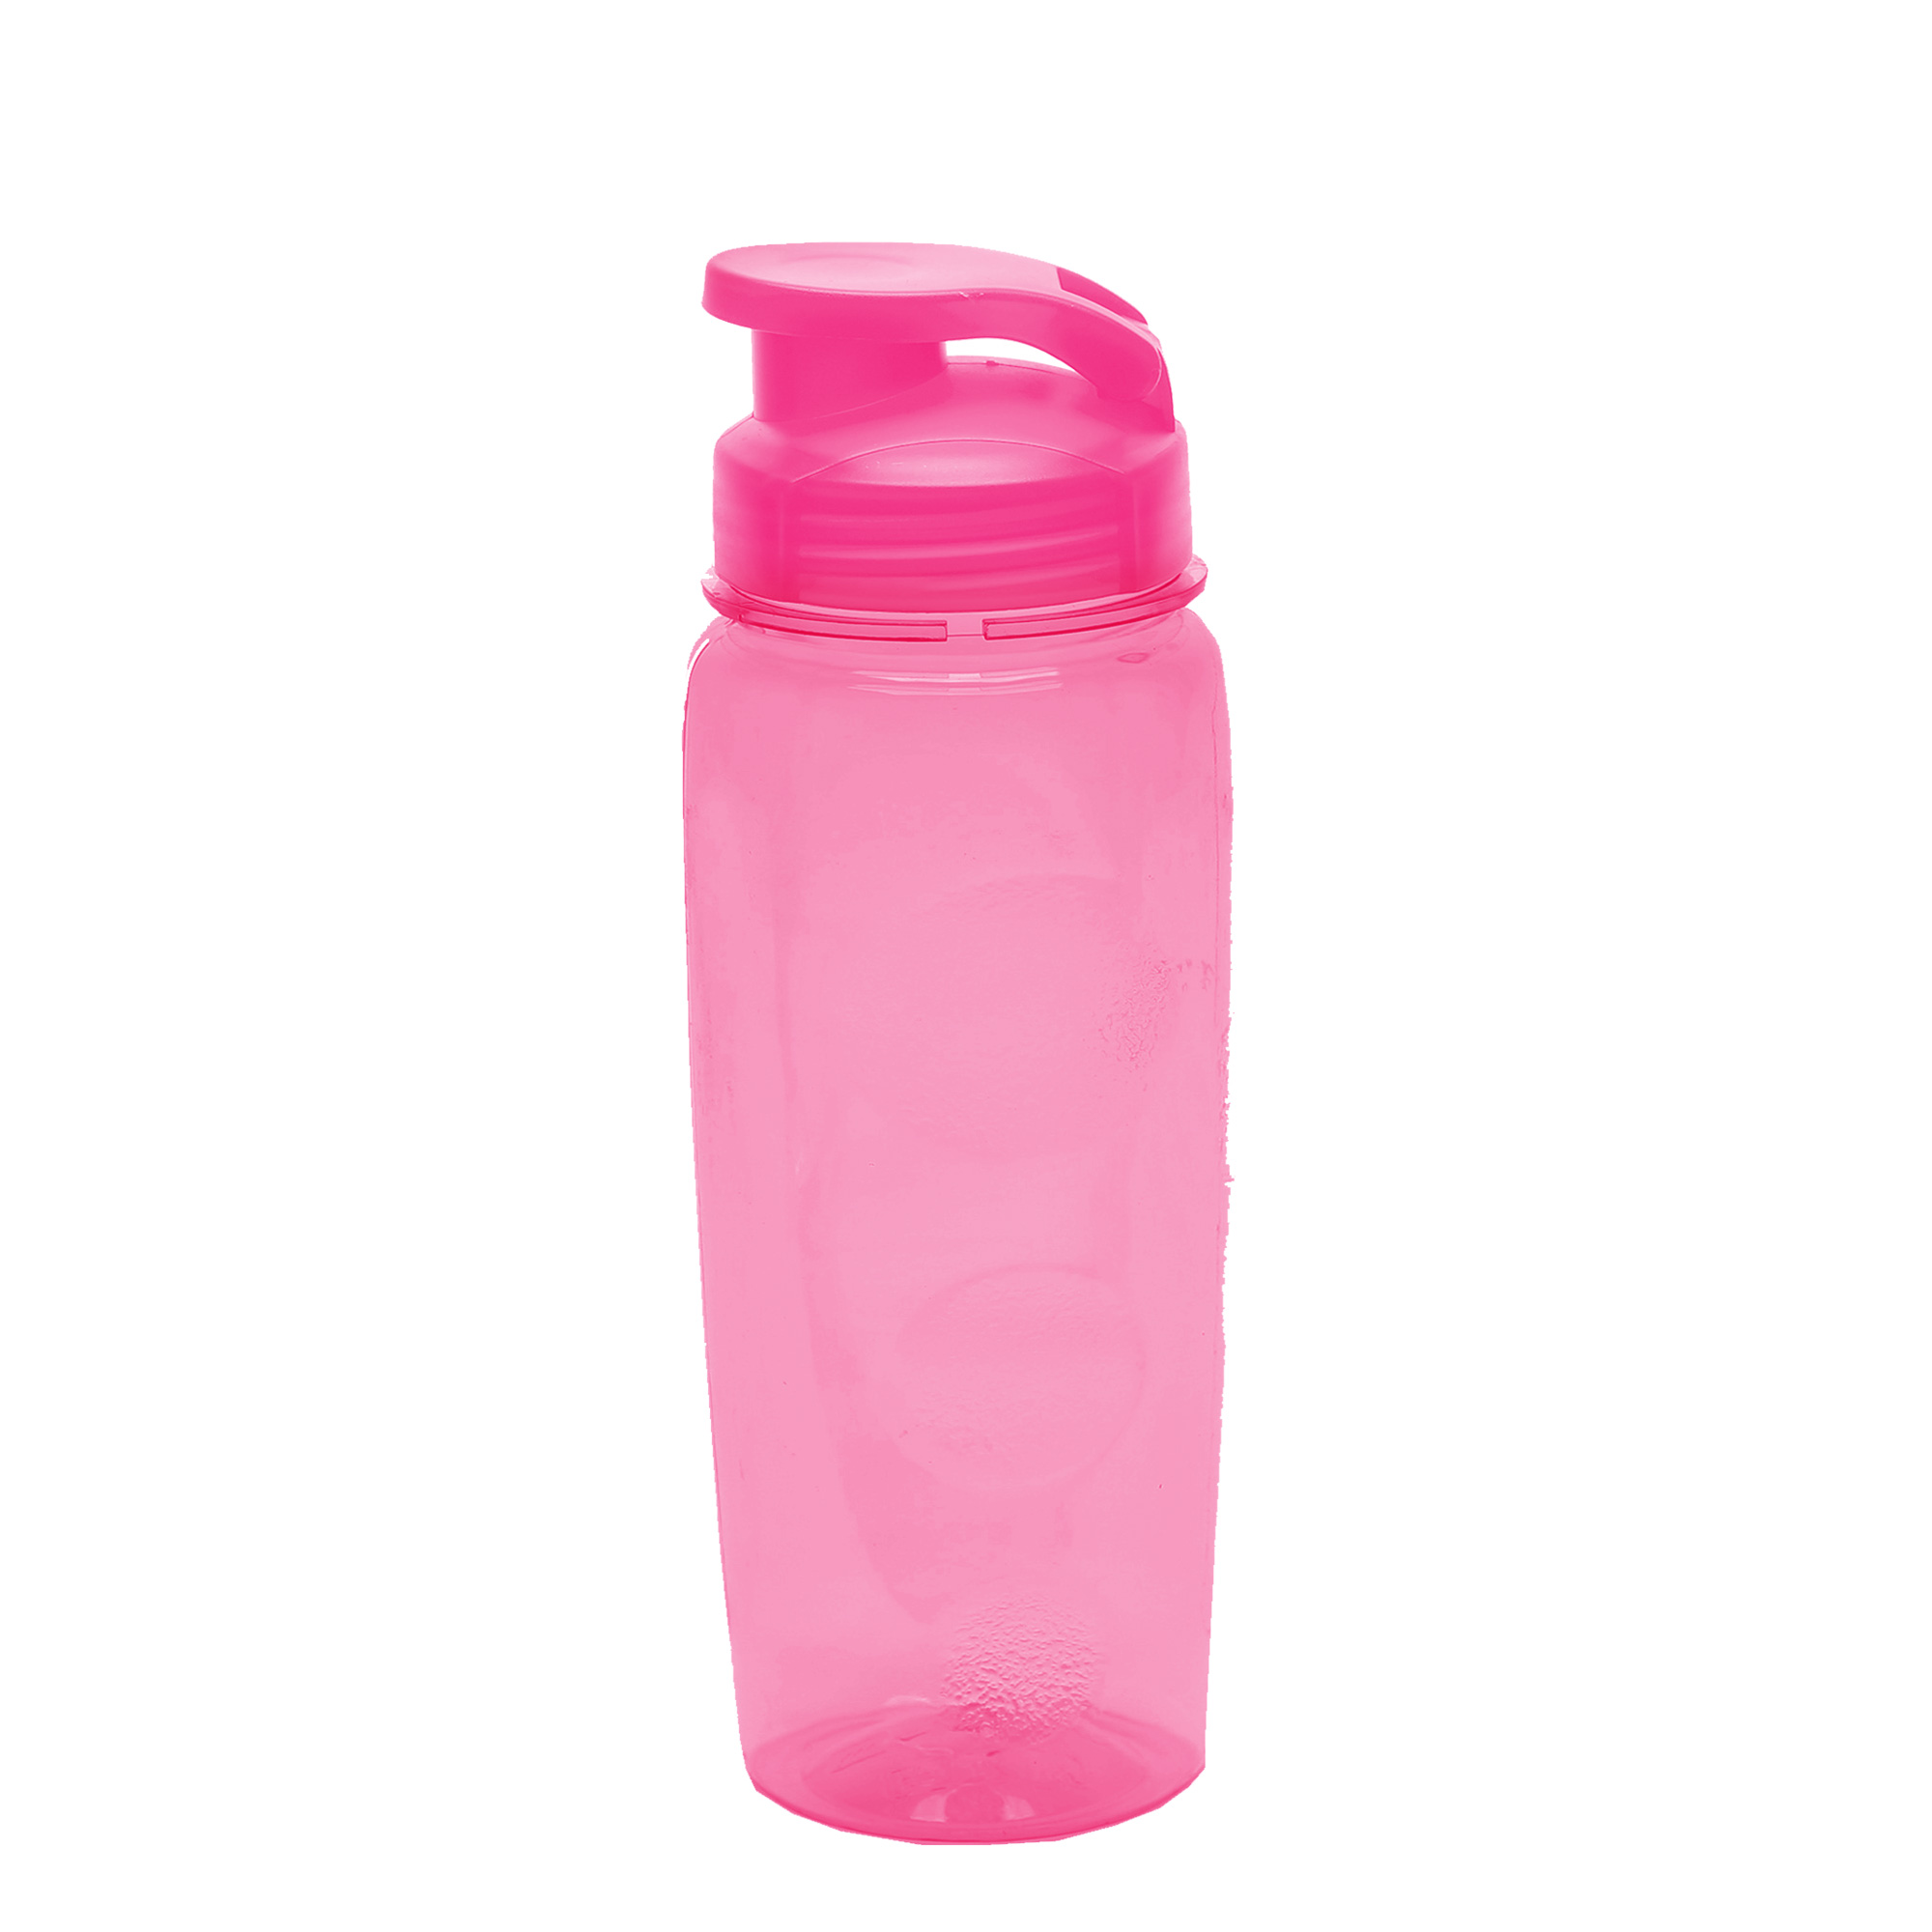 New Squeeze Fortaleza 500 Ml - Rosa Pink